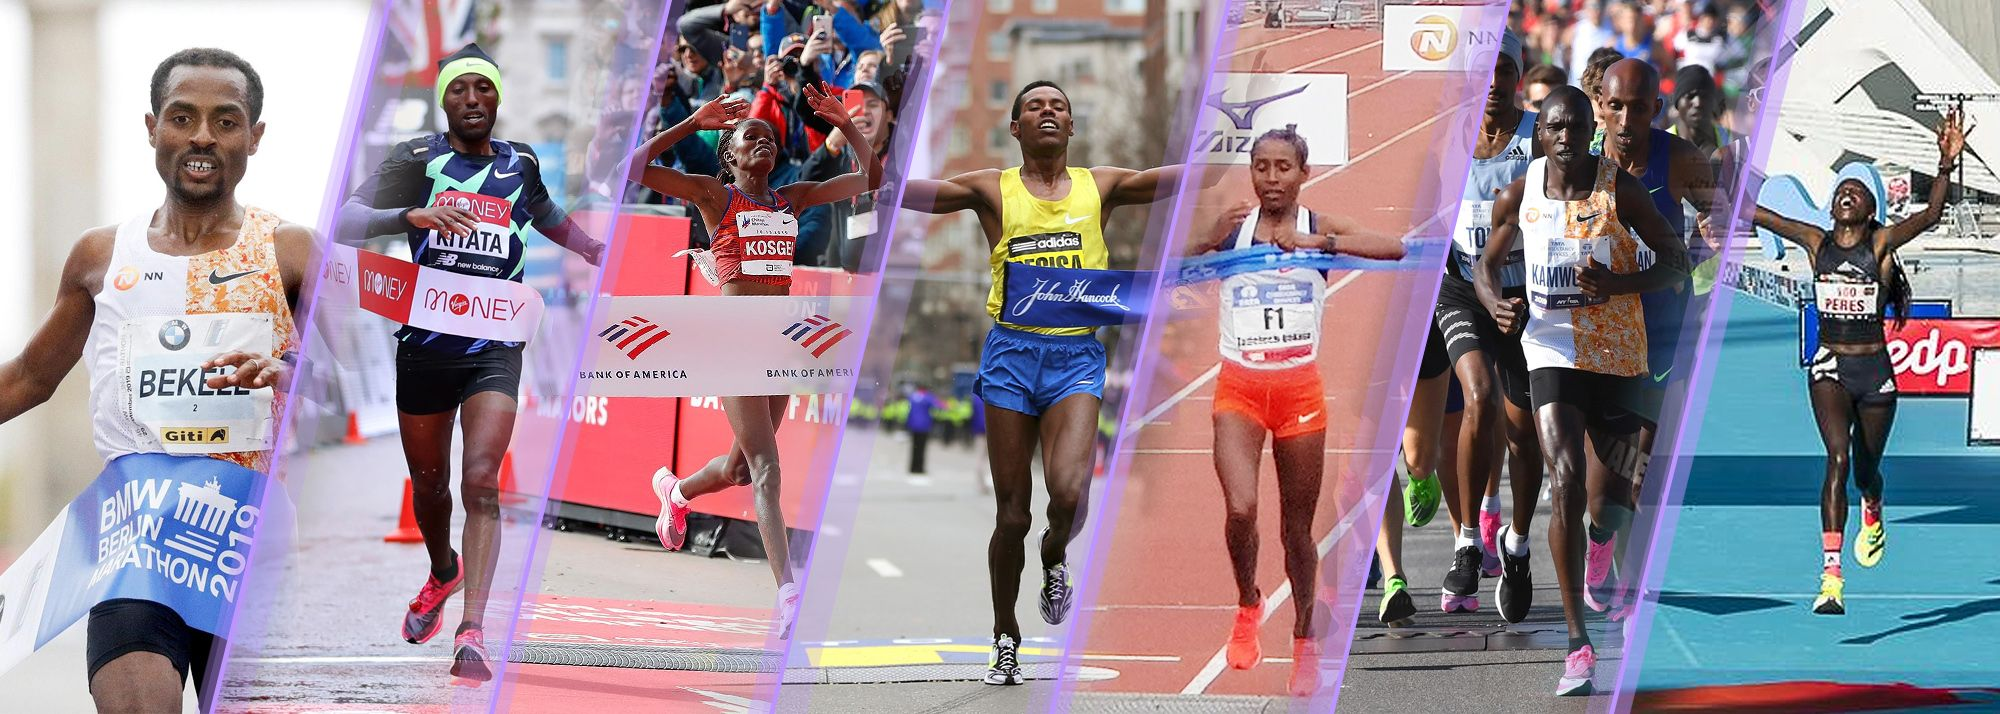 A feast of top-class road racing will be on offer with the return of the World Athletics Elite Platinum Label marathon series this weekend.